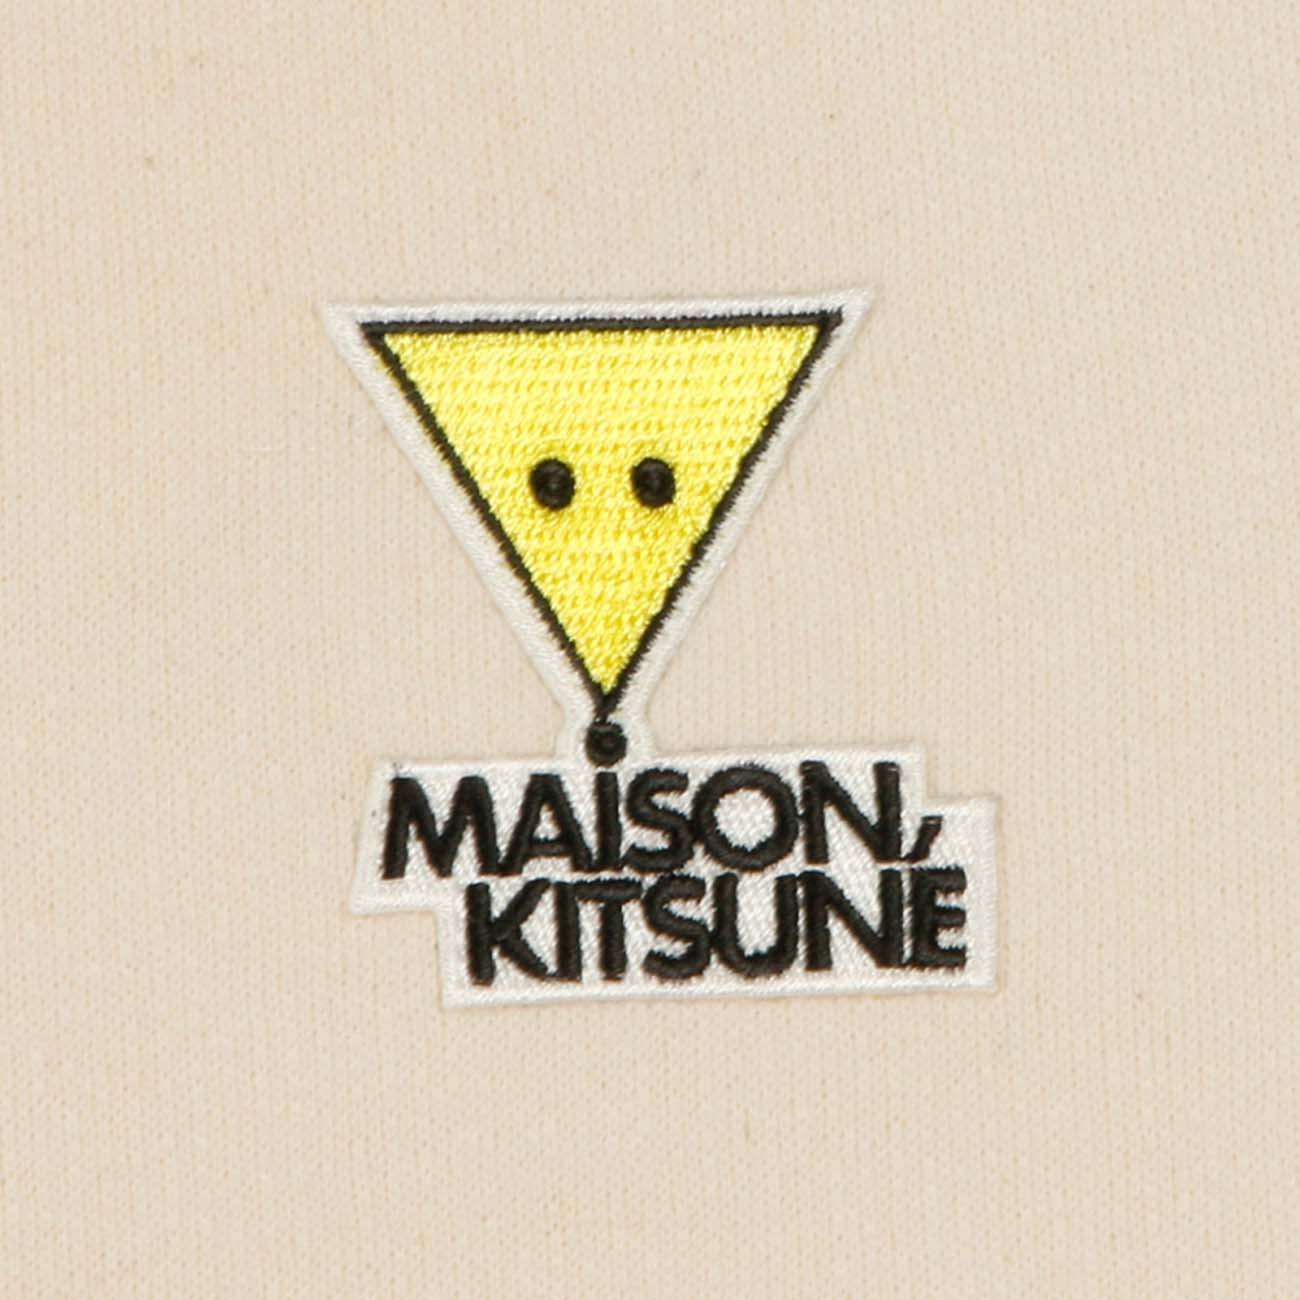 MAISON KITSUNE スウェット REGULAR SWEAT WHITE